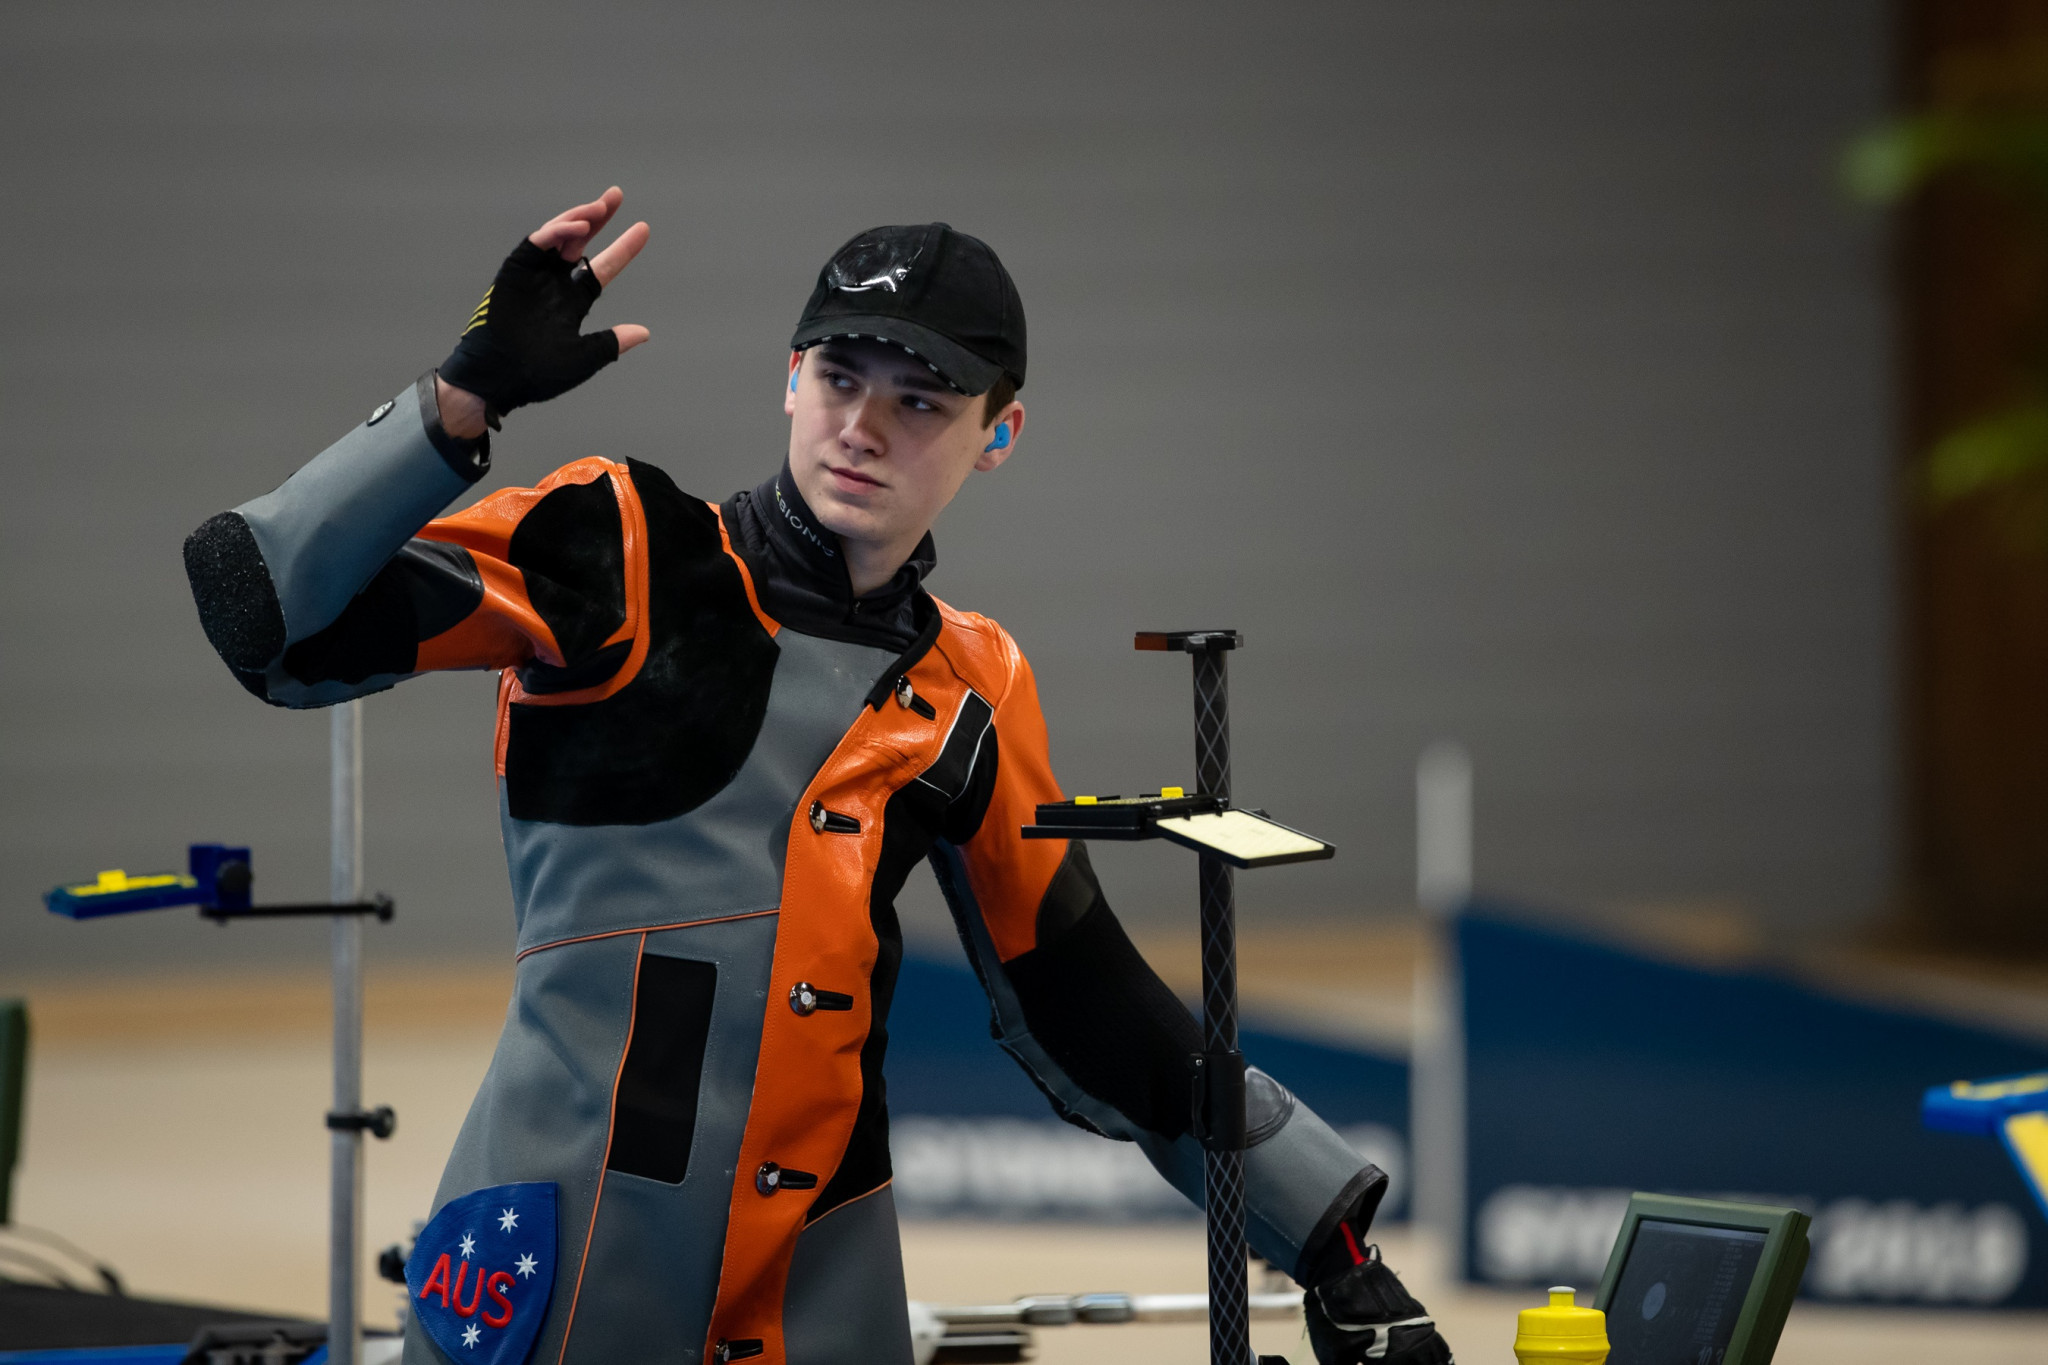 Alex Hoberg triumphed in the men's 10 metres air rifle final on a successful day for hosts Australia at the Oceania Shooting Championship in Sydney ©Shooting Australia